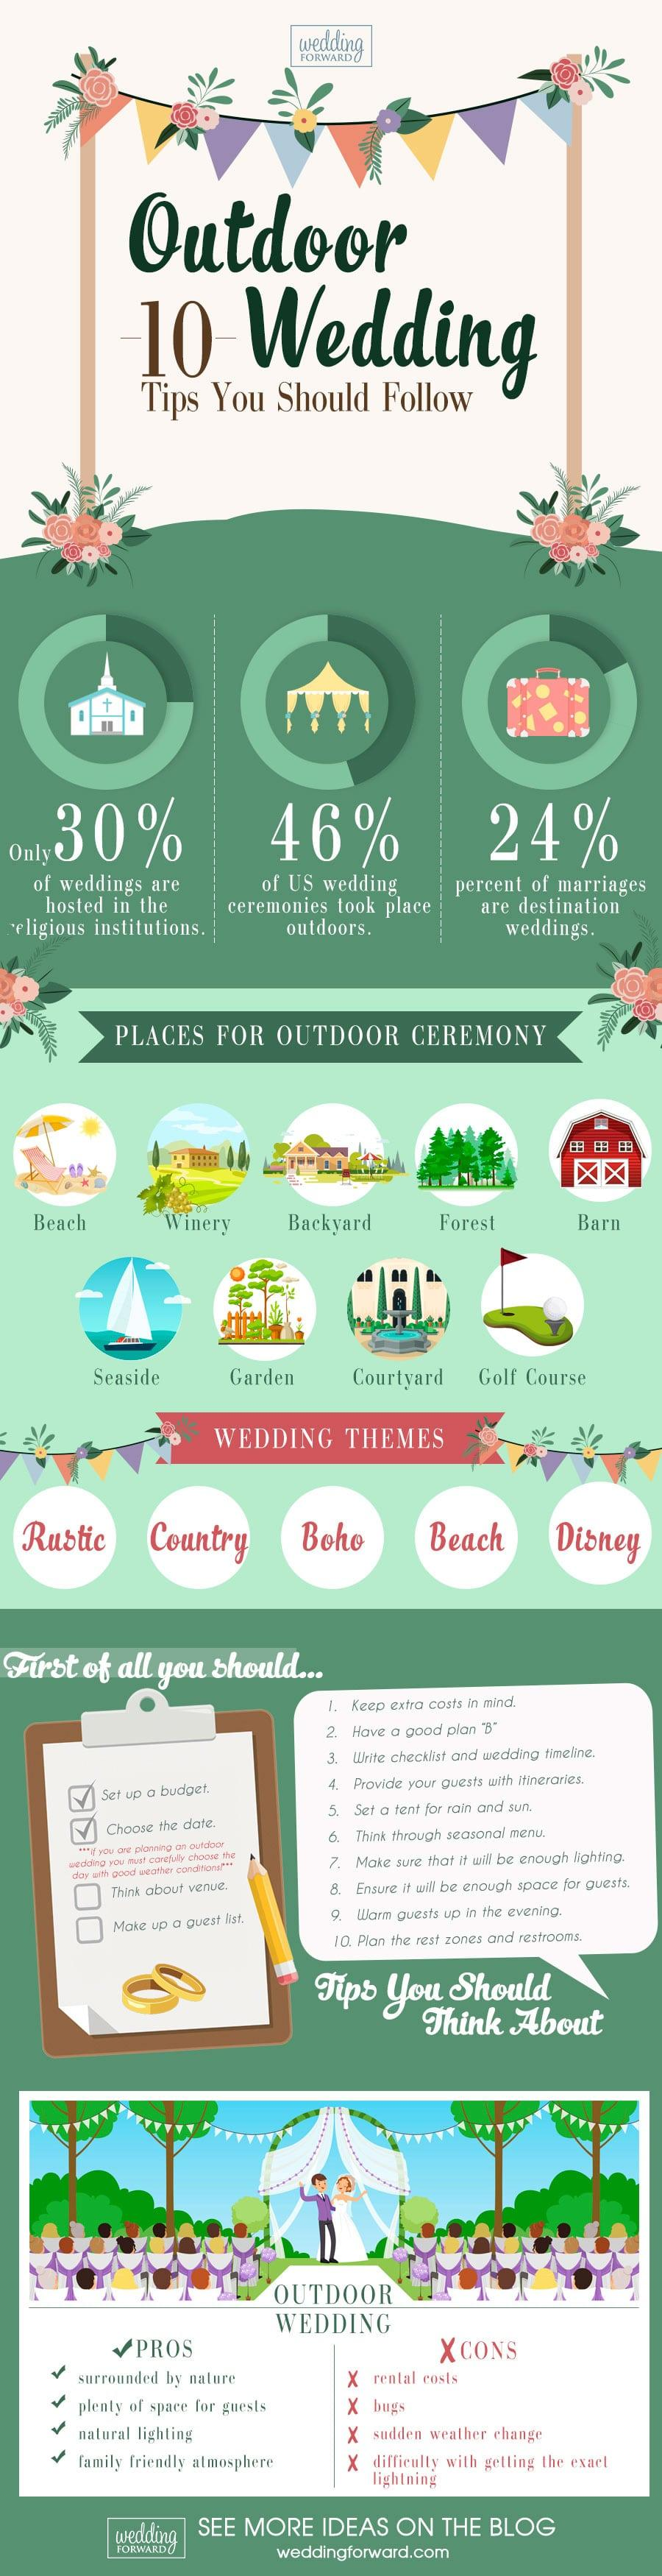 how to plan outdoor wedding tips infographic